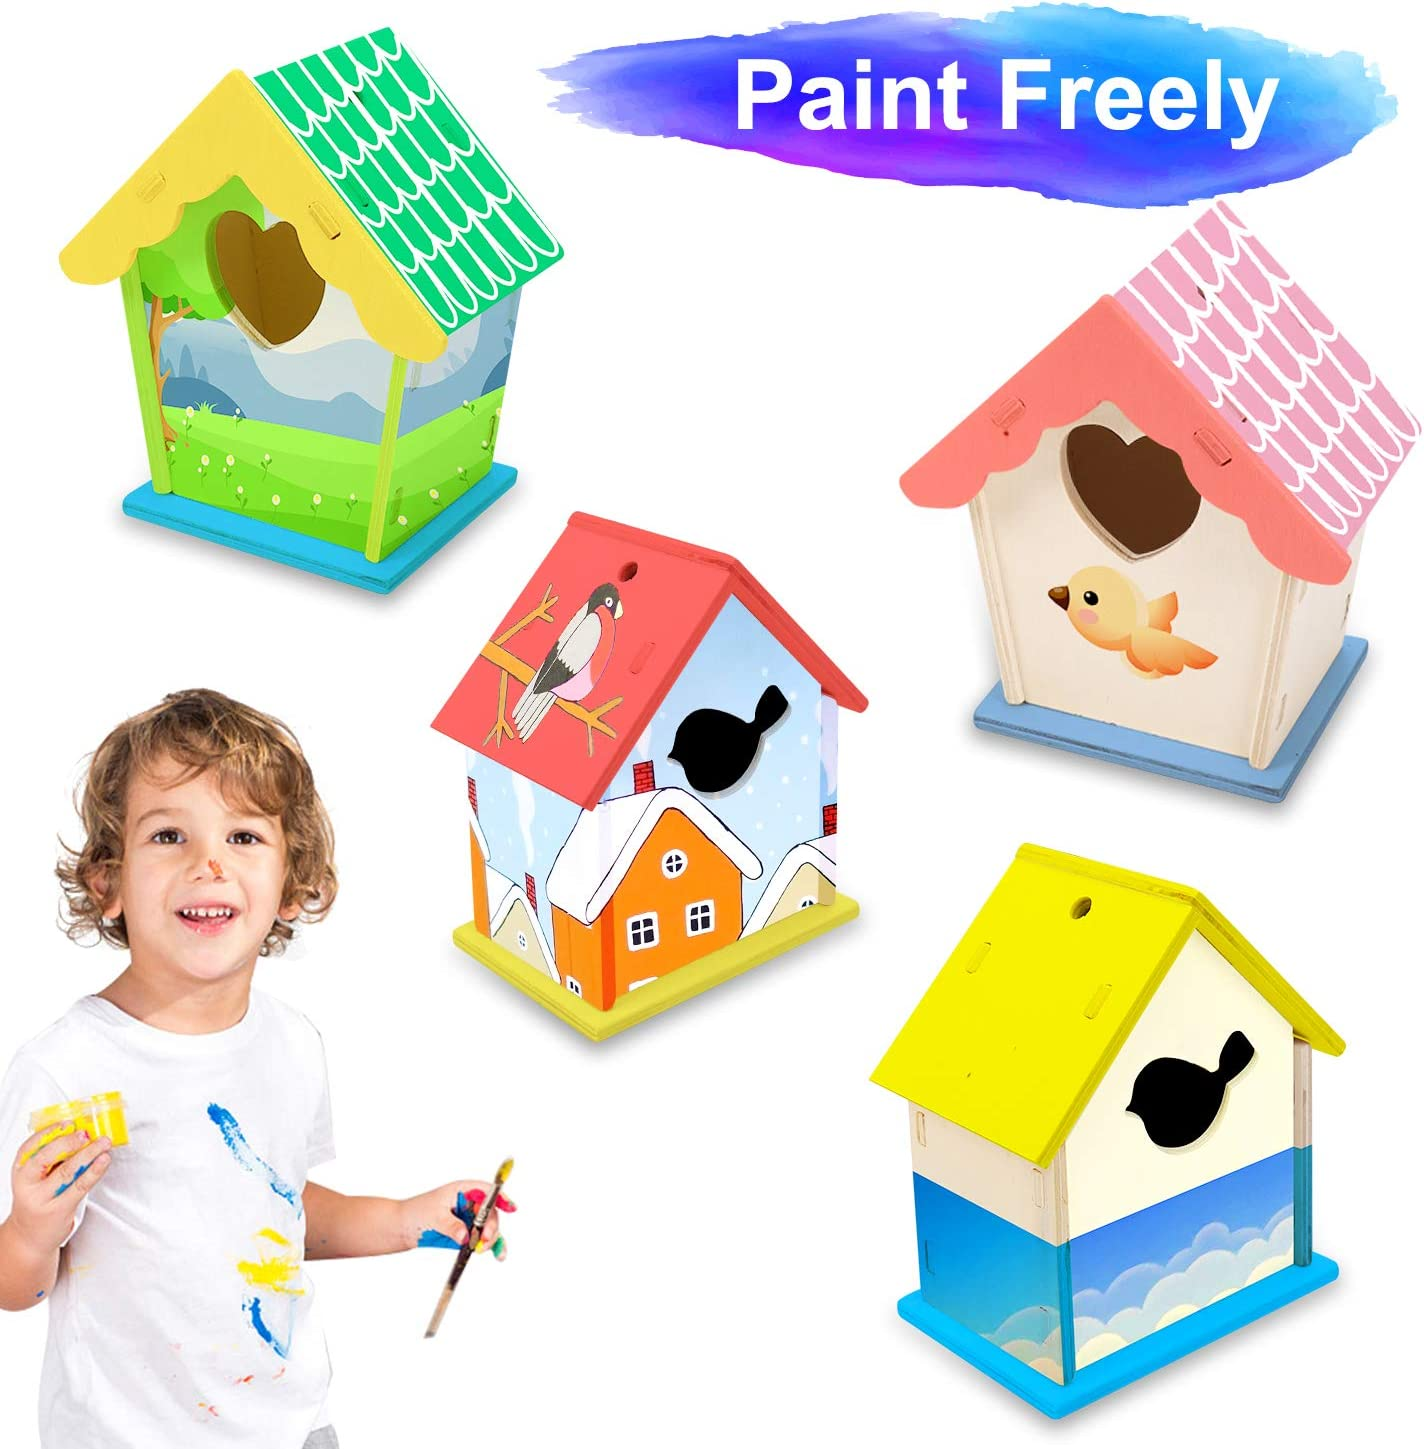 12 Paints+ 2 Brushes Unfinished Bird House for Kids to Build and Paint 2 Pack Wooden DIY Bird House Kits for Kids Crafts Wood Arts for Boys Girls Ages 3-8